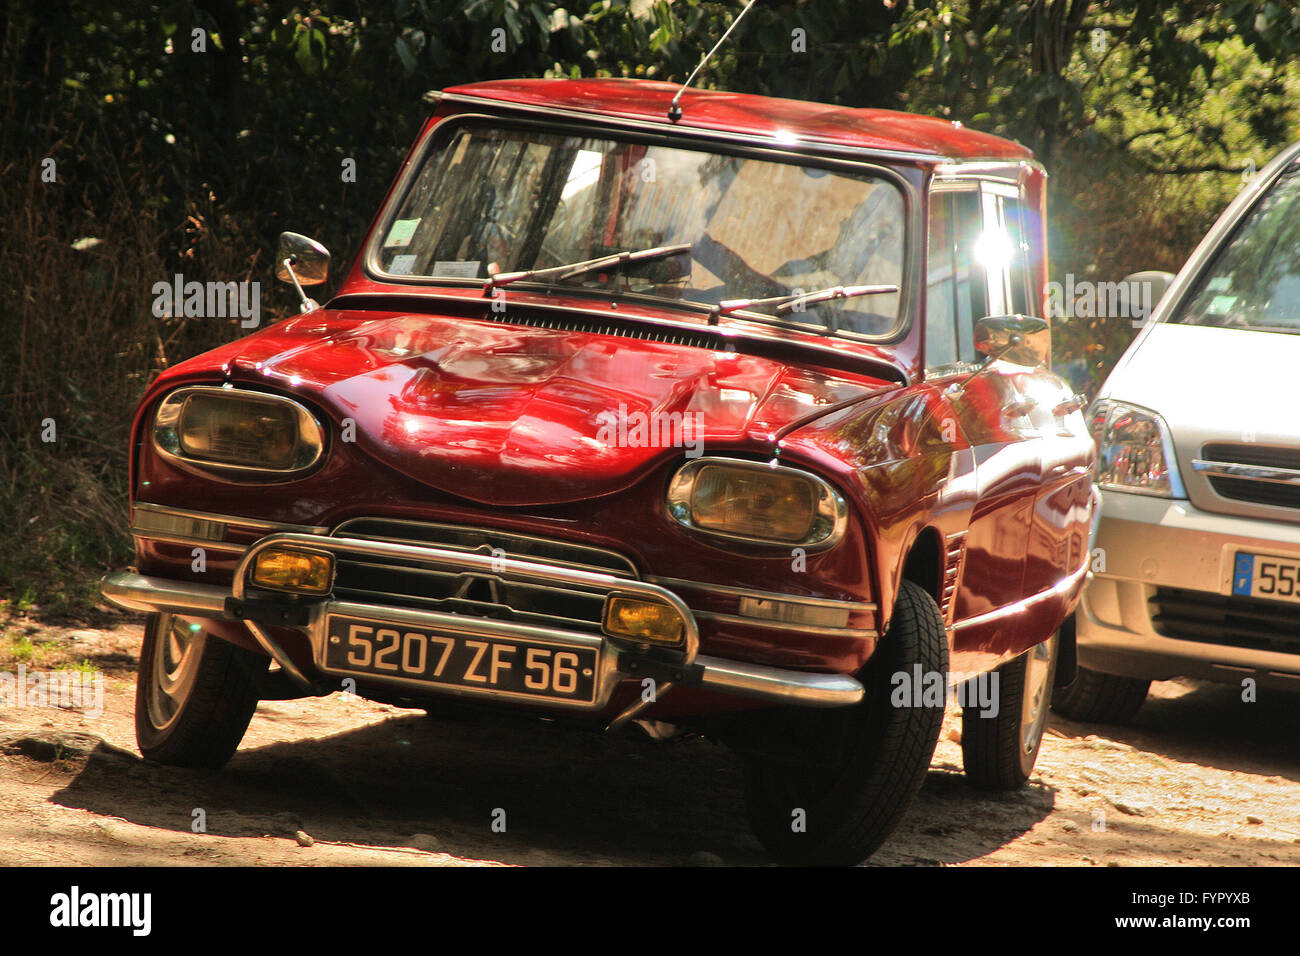 Citroen Ami. Old classic car in red Stock Photo: 103152403 - Alamy